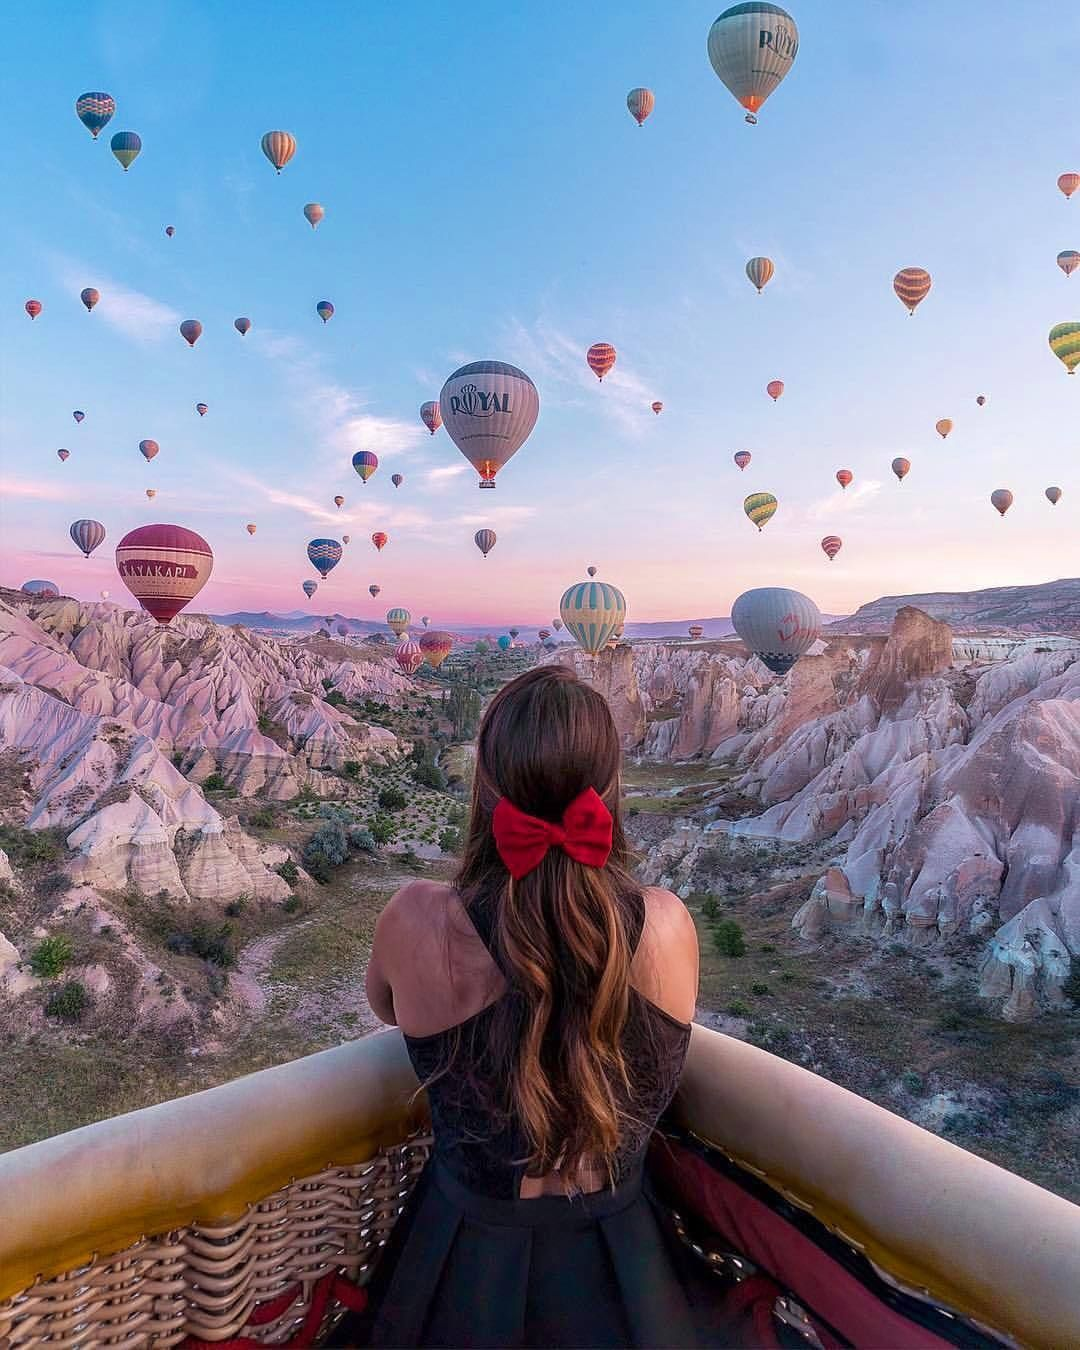 Cappadocia, Turkey • Balloon Festival Travel photography